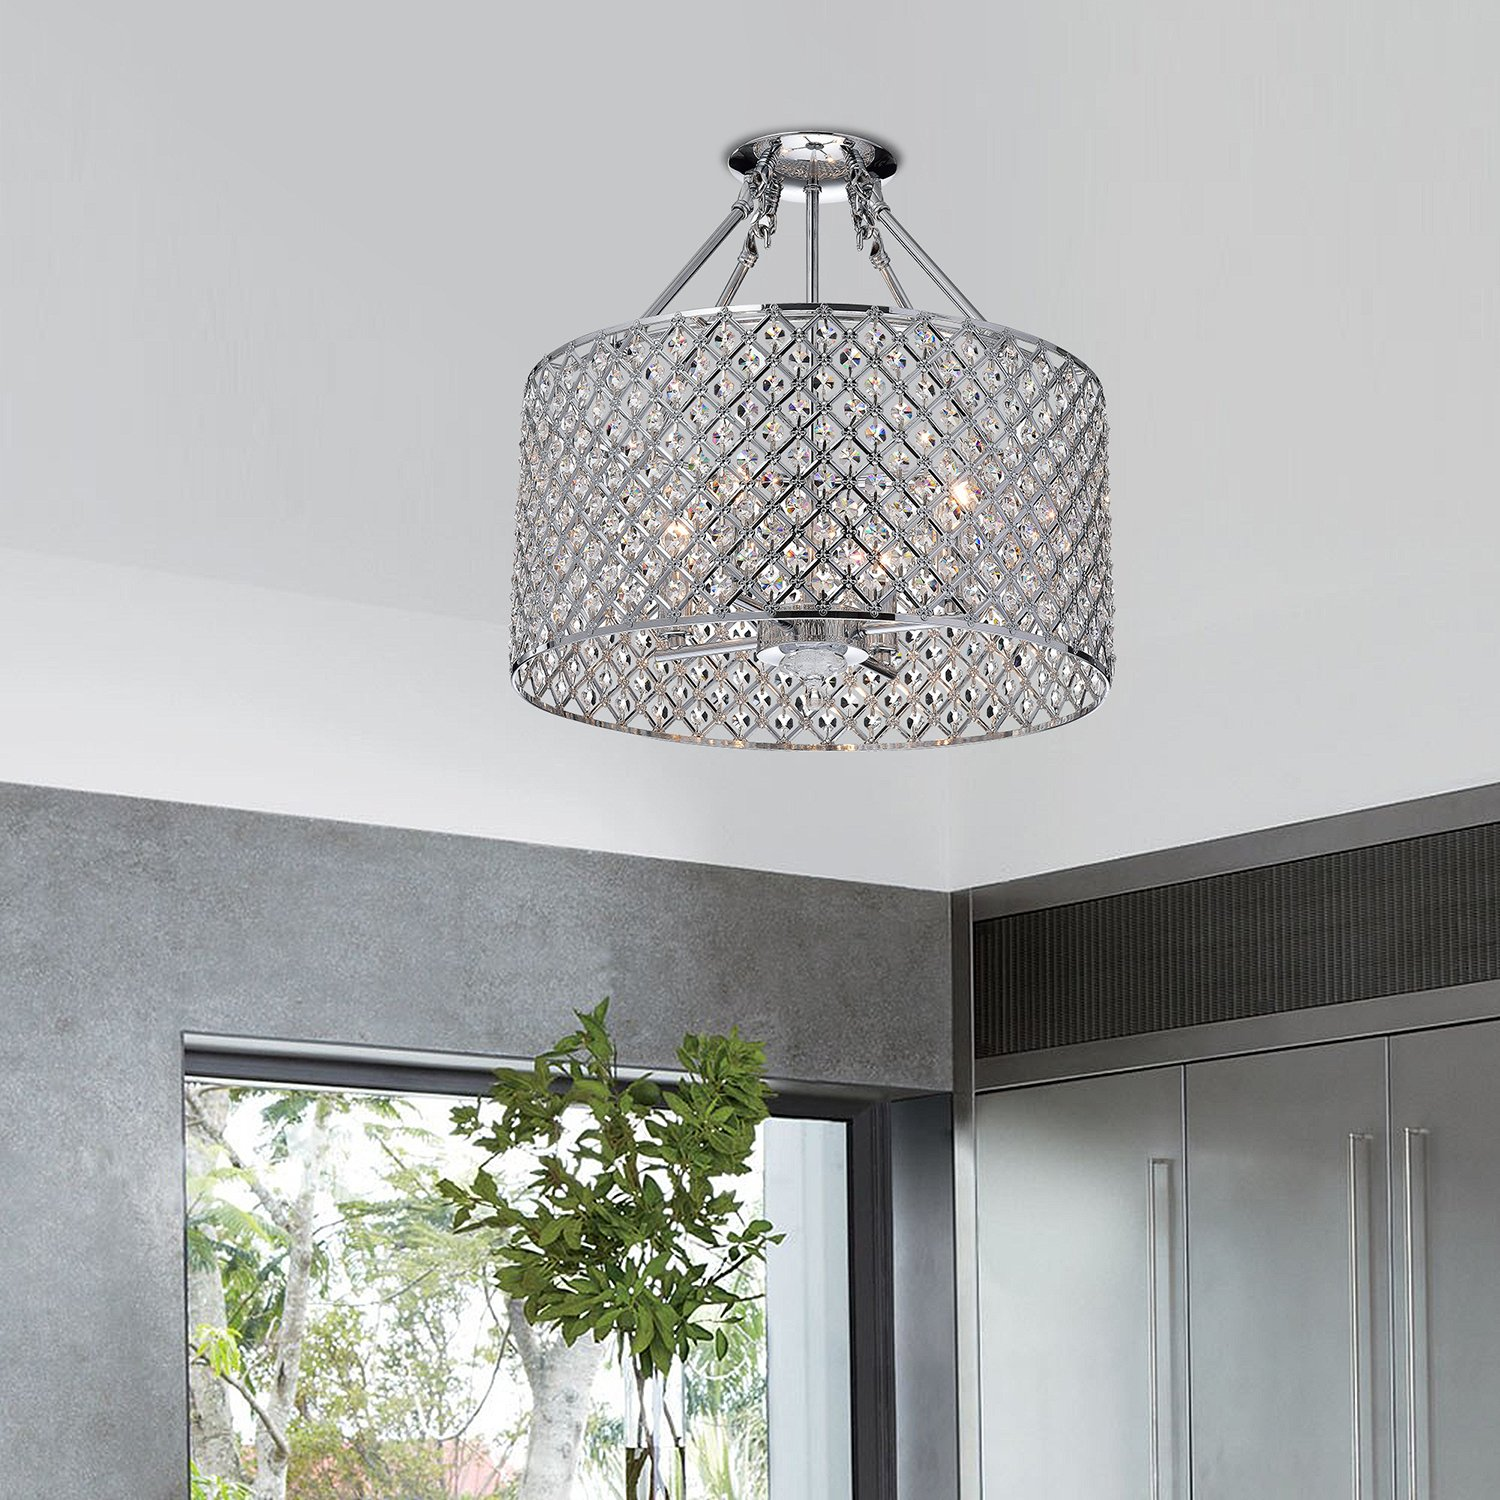 lighting drum light chandelier zoom classics ashford pendant shade crystal item black bk